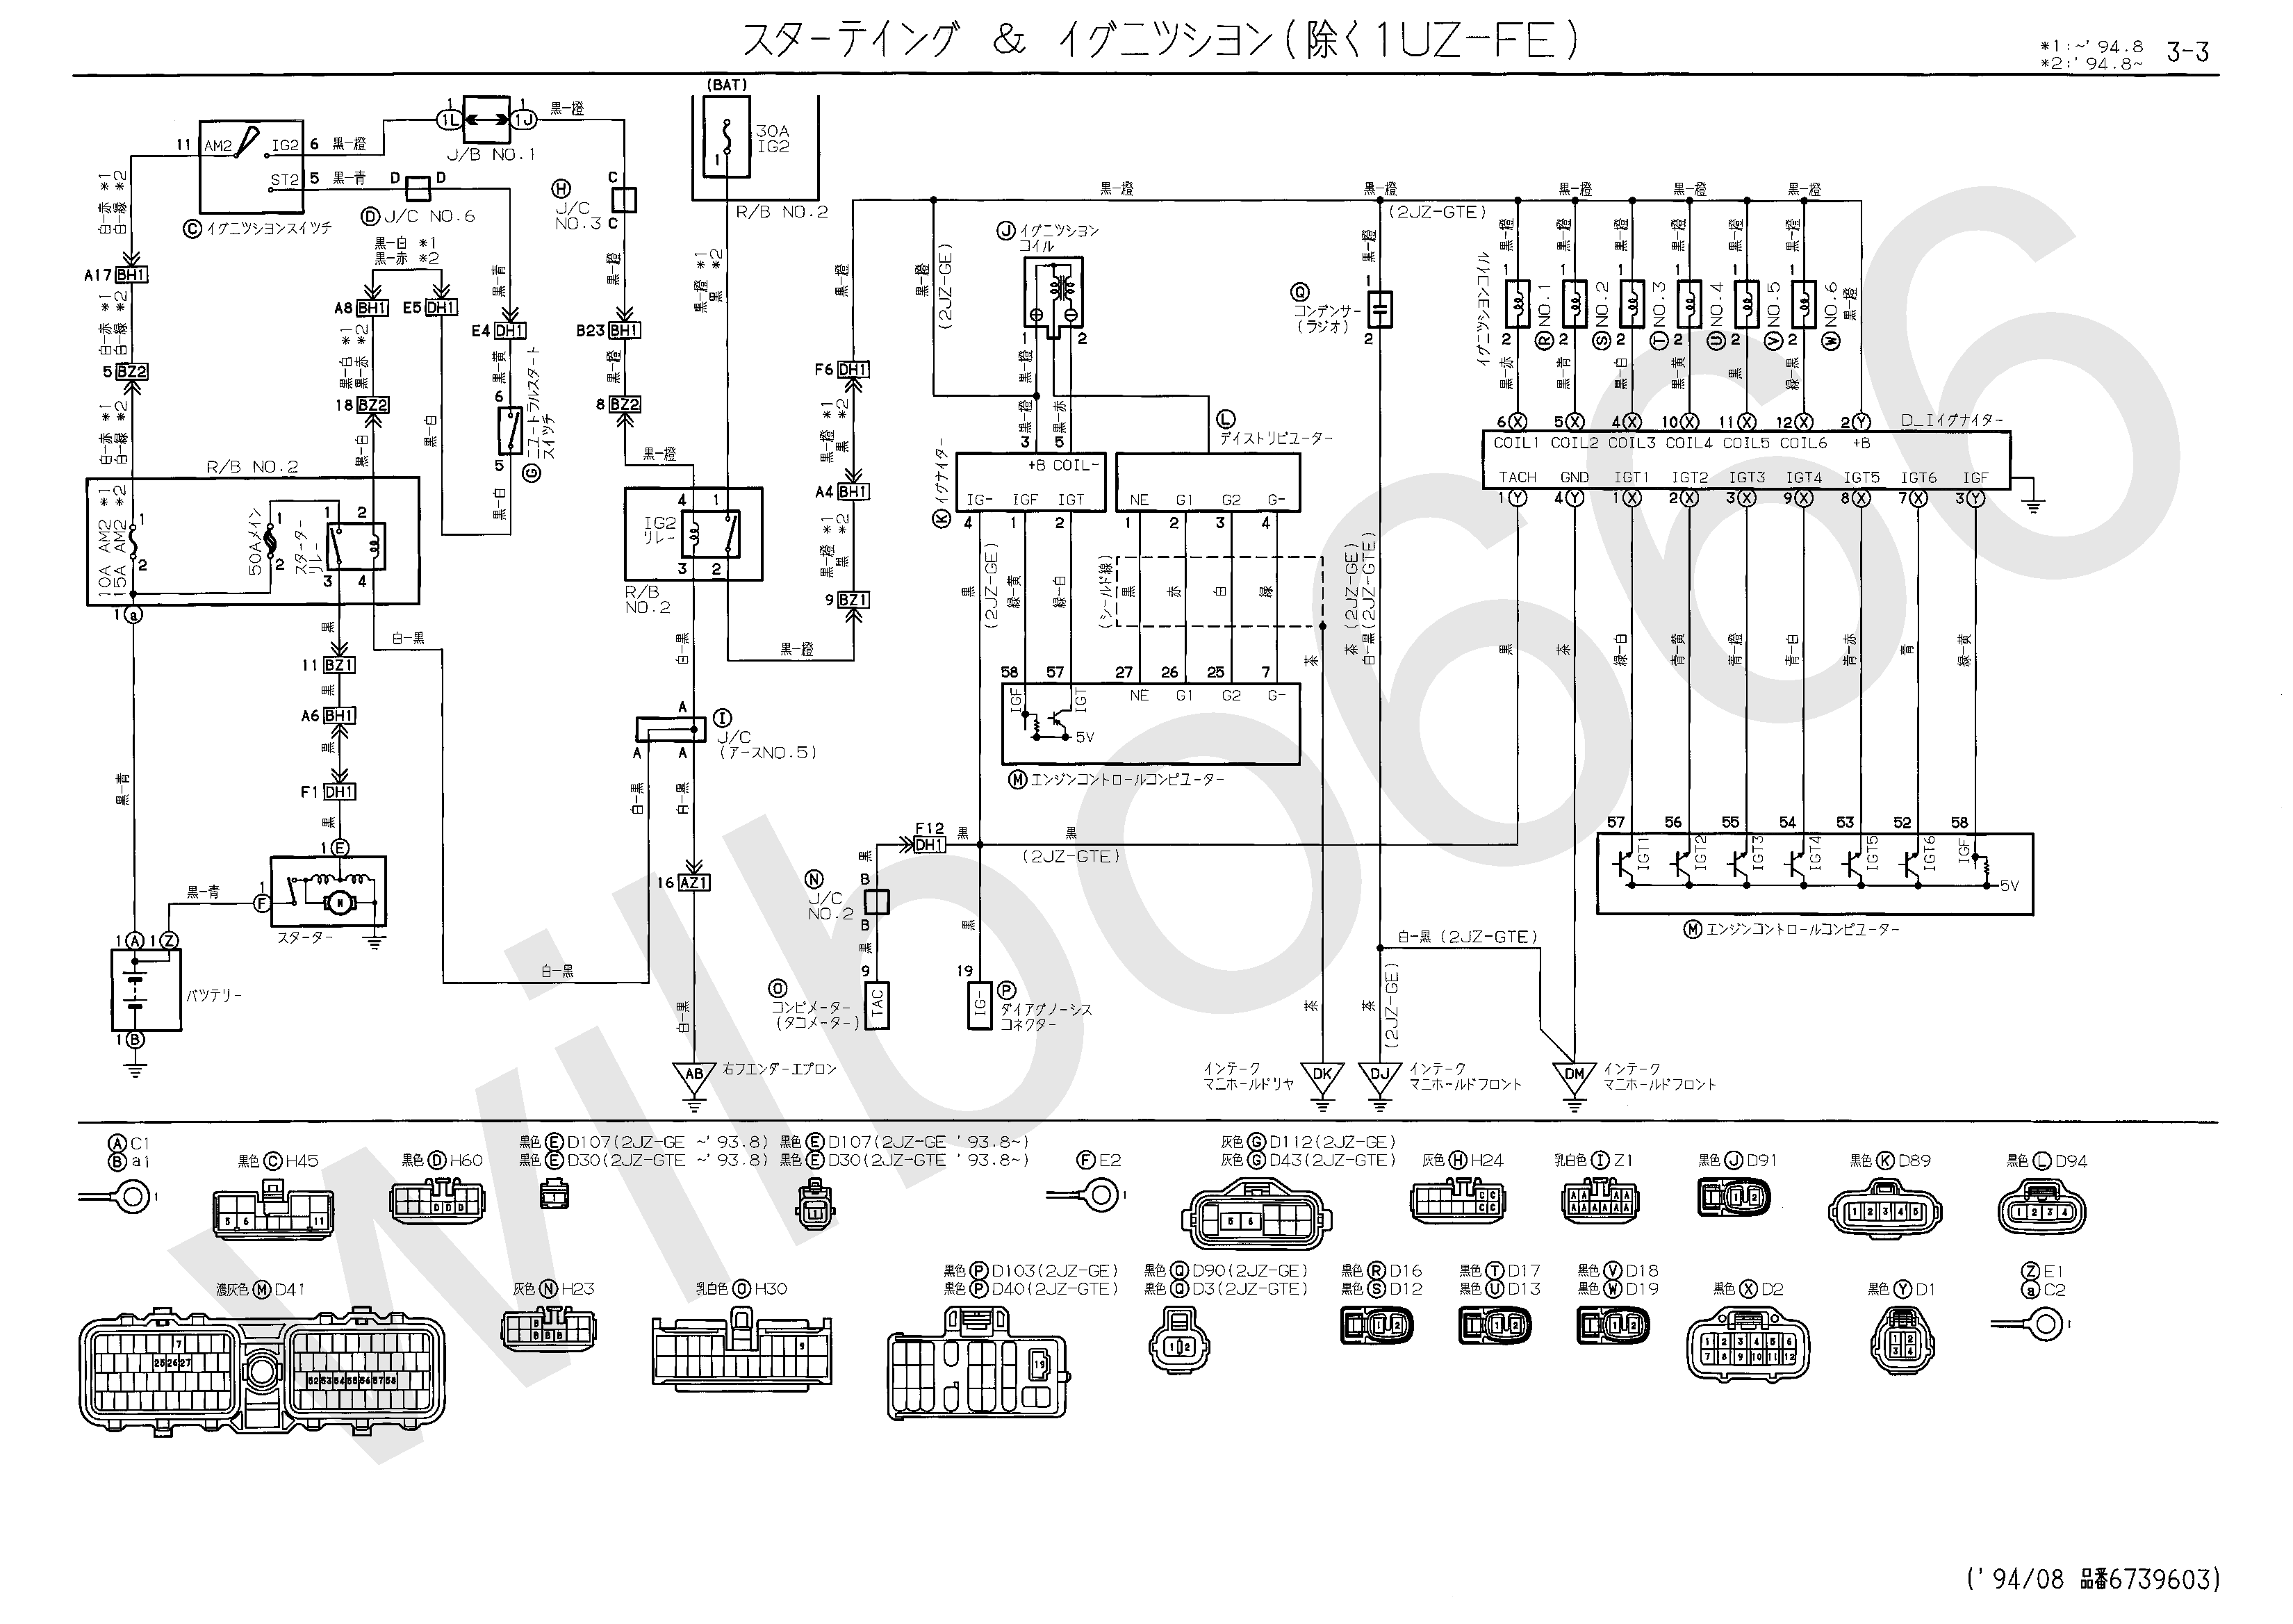 JZS14%23%2C UZS14%23 Electrical Wiring Diagram 6739604 3 3?resize\\\\\\\\\\\\\\\\\\\\\\\\\\\\\\\\\\\\\\\\\\\\\\\\\\\\\\\\\\\\\\\\\\\\\\\\\\\\\\\\\\\\\\\\\\\\\\\\\\\\\\\\\\\\\\\\\\\\\\\\\\\\\\\\\\\\\\\\\\\\\\\\\\\\\\\\\\\\\\\\\\\\\\\\\\\\\\\\\\\\\\\\\\\\\\\\\\\\\\\\\\\\\\\\\\\\\\\\\\\\\\\\\\\\\\\\\\\\\\\\\\\\\\\\\\\\\\\\\\\\\\\\\\\\\\\\\\\\\\\\\\\\\\\\\\\\\\\\\\\\\\\\\\\\\\\\\\\\\\\\\\\\\\\\\\\\\\\\\\\\\\\\\\\\\\\\\\\\\\\\\\\\\\\\\\\\\\\\\\\\\\\\\\\\\\\\\\\\\\\\\\\\\\\\\\\\\\\\\\\\\\\\\\\\\\\\\\\\\\\\\\\\\\\\\=665%2C471 rb26 wiring diagram rb26 wiring harness diagram \u2022 wiring diagrams  at gsmportal.co